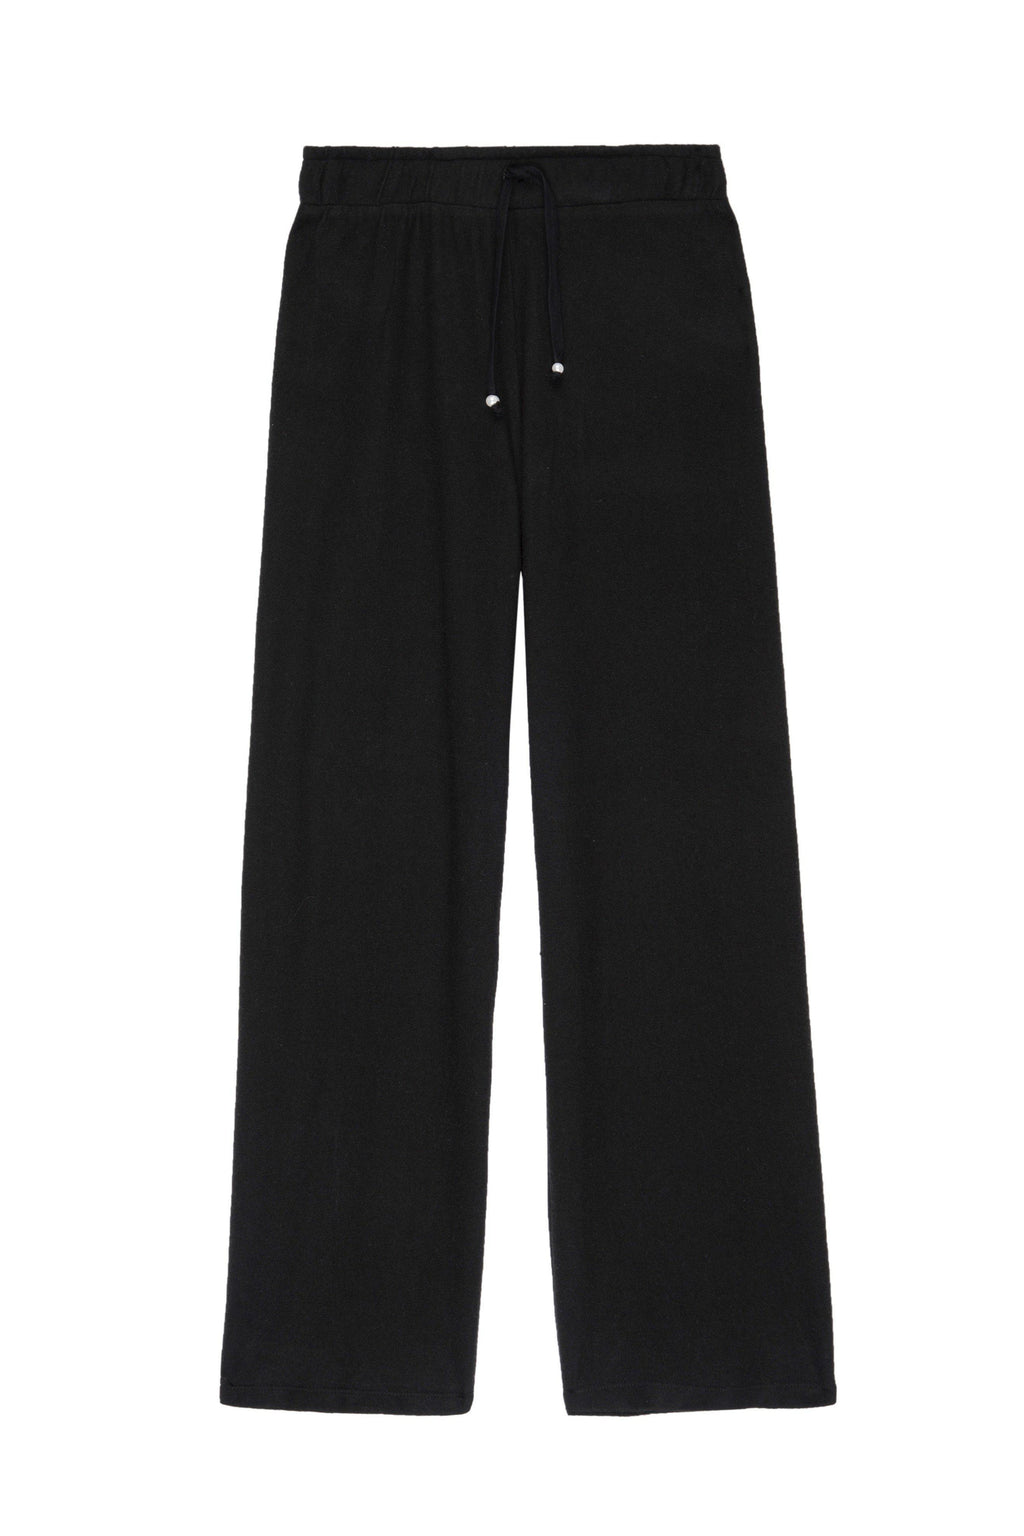 DONNI. SWEATER CROPPED FLARE SWEATPANT IN BLACK